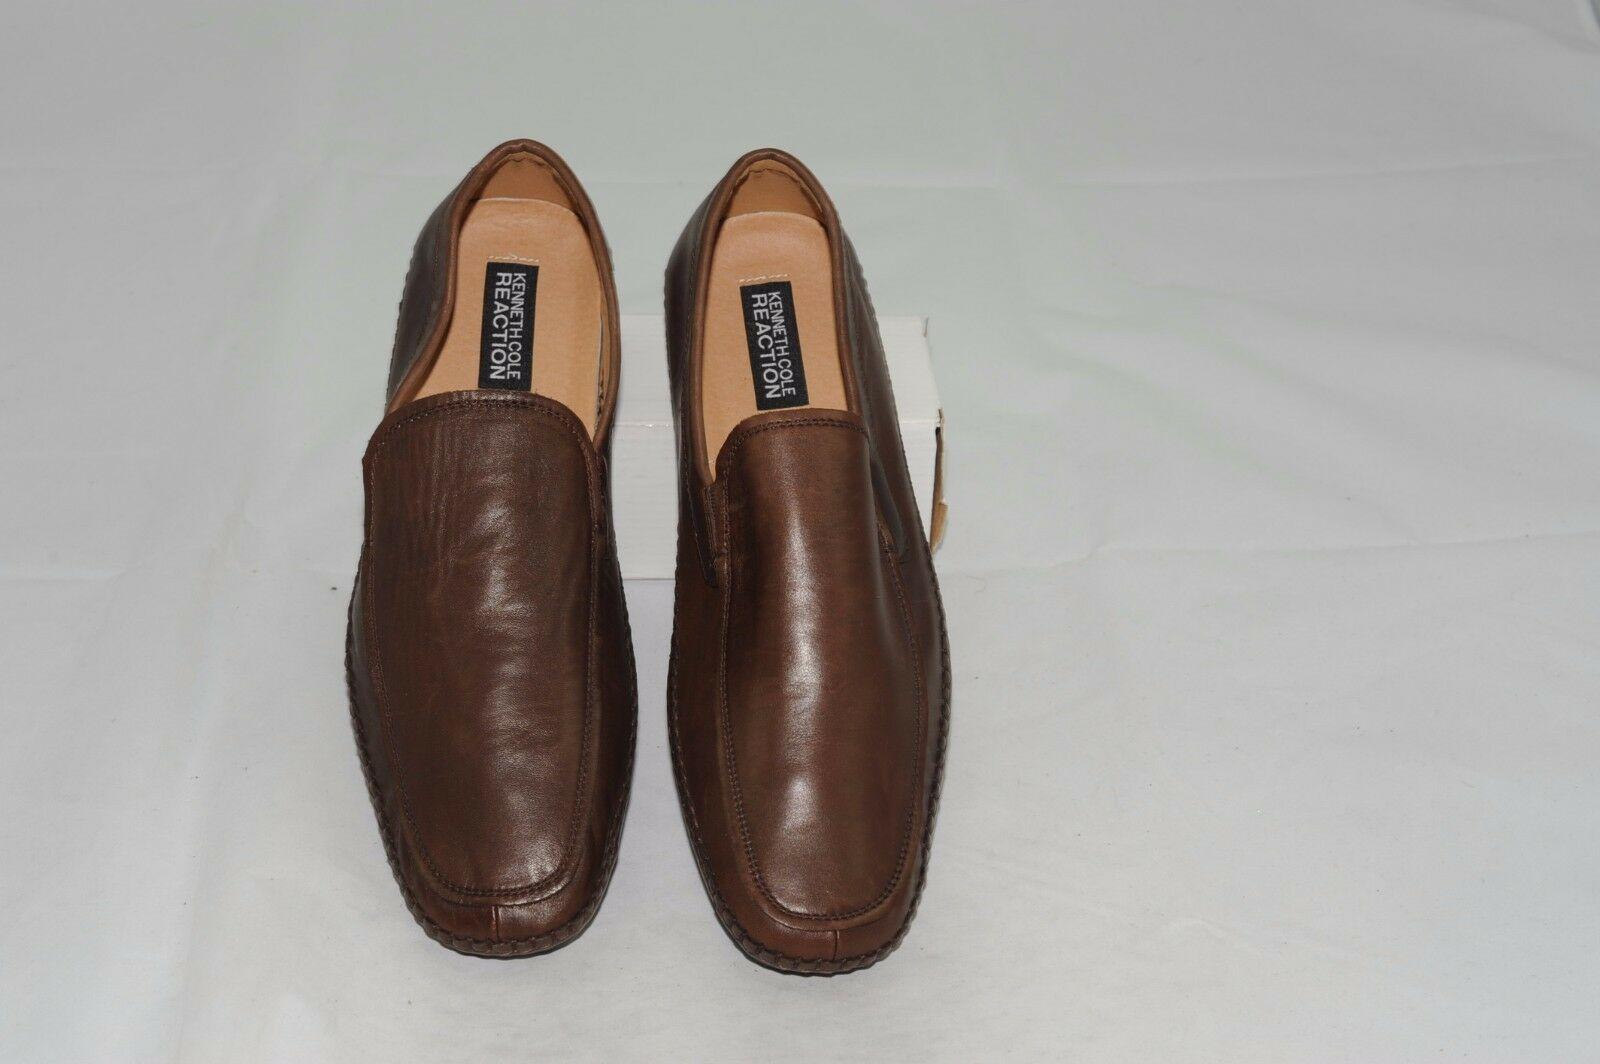 NWT Kenneth Cole Reaction Men's Leather Slip-Ons Loafer Dress shoes 10.5 M